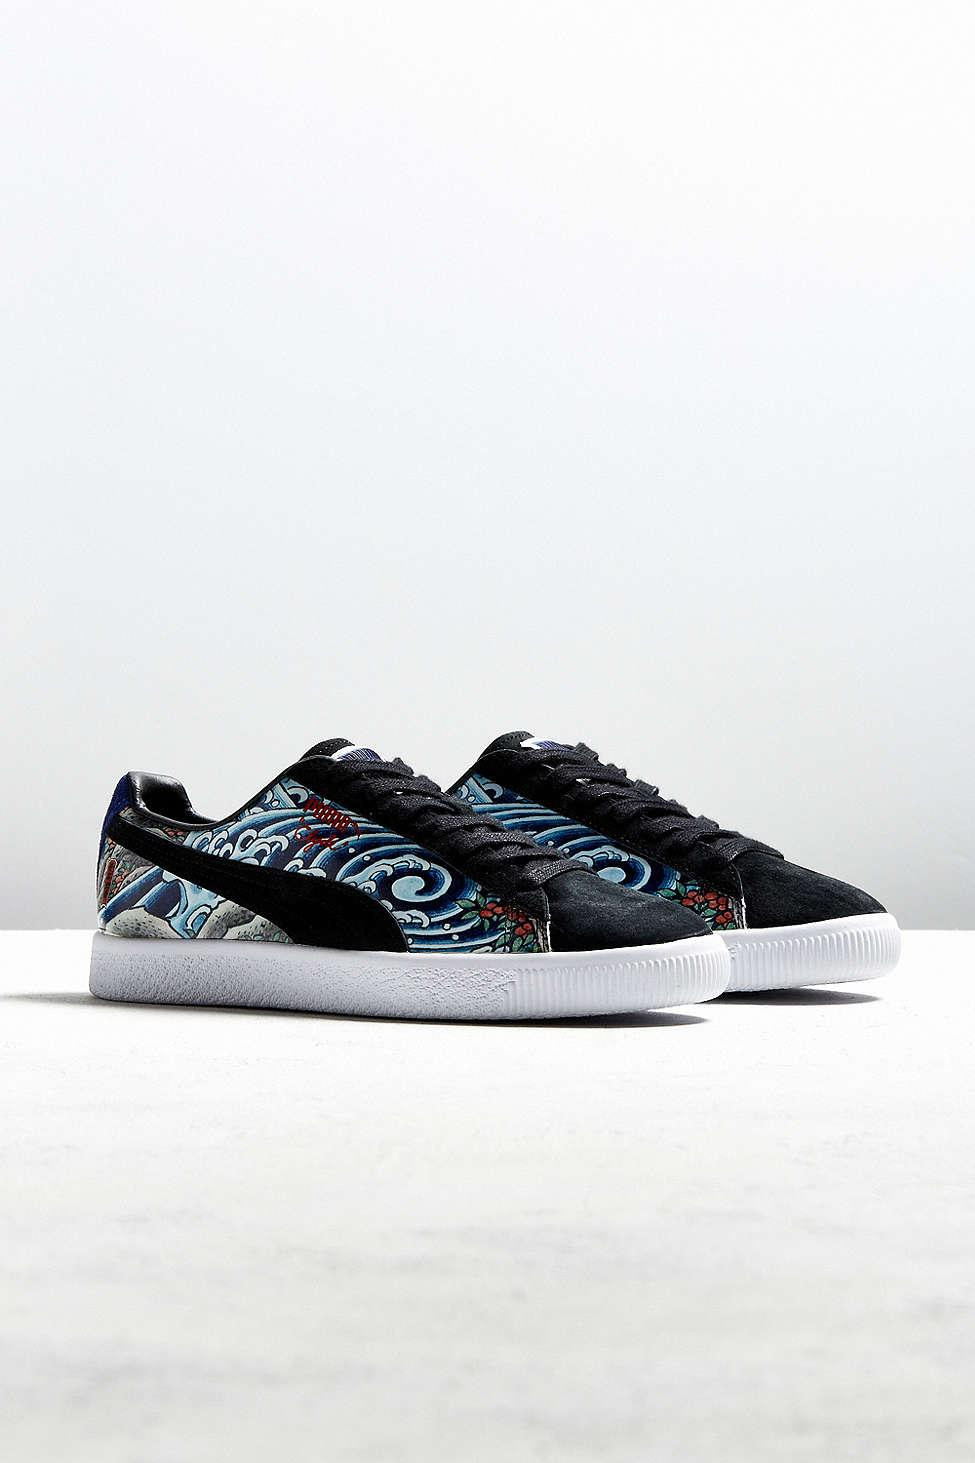 9462da3ebb88 Puma X Atmos Clyde Three Tides Tattoo Sneaker for Men - Lyst